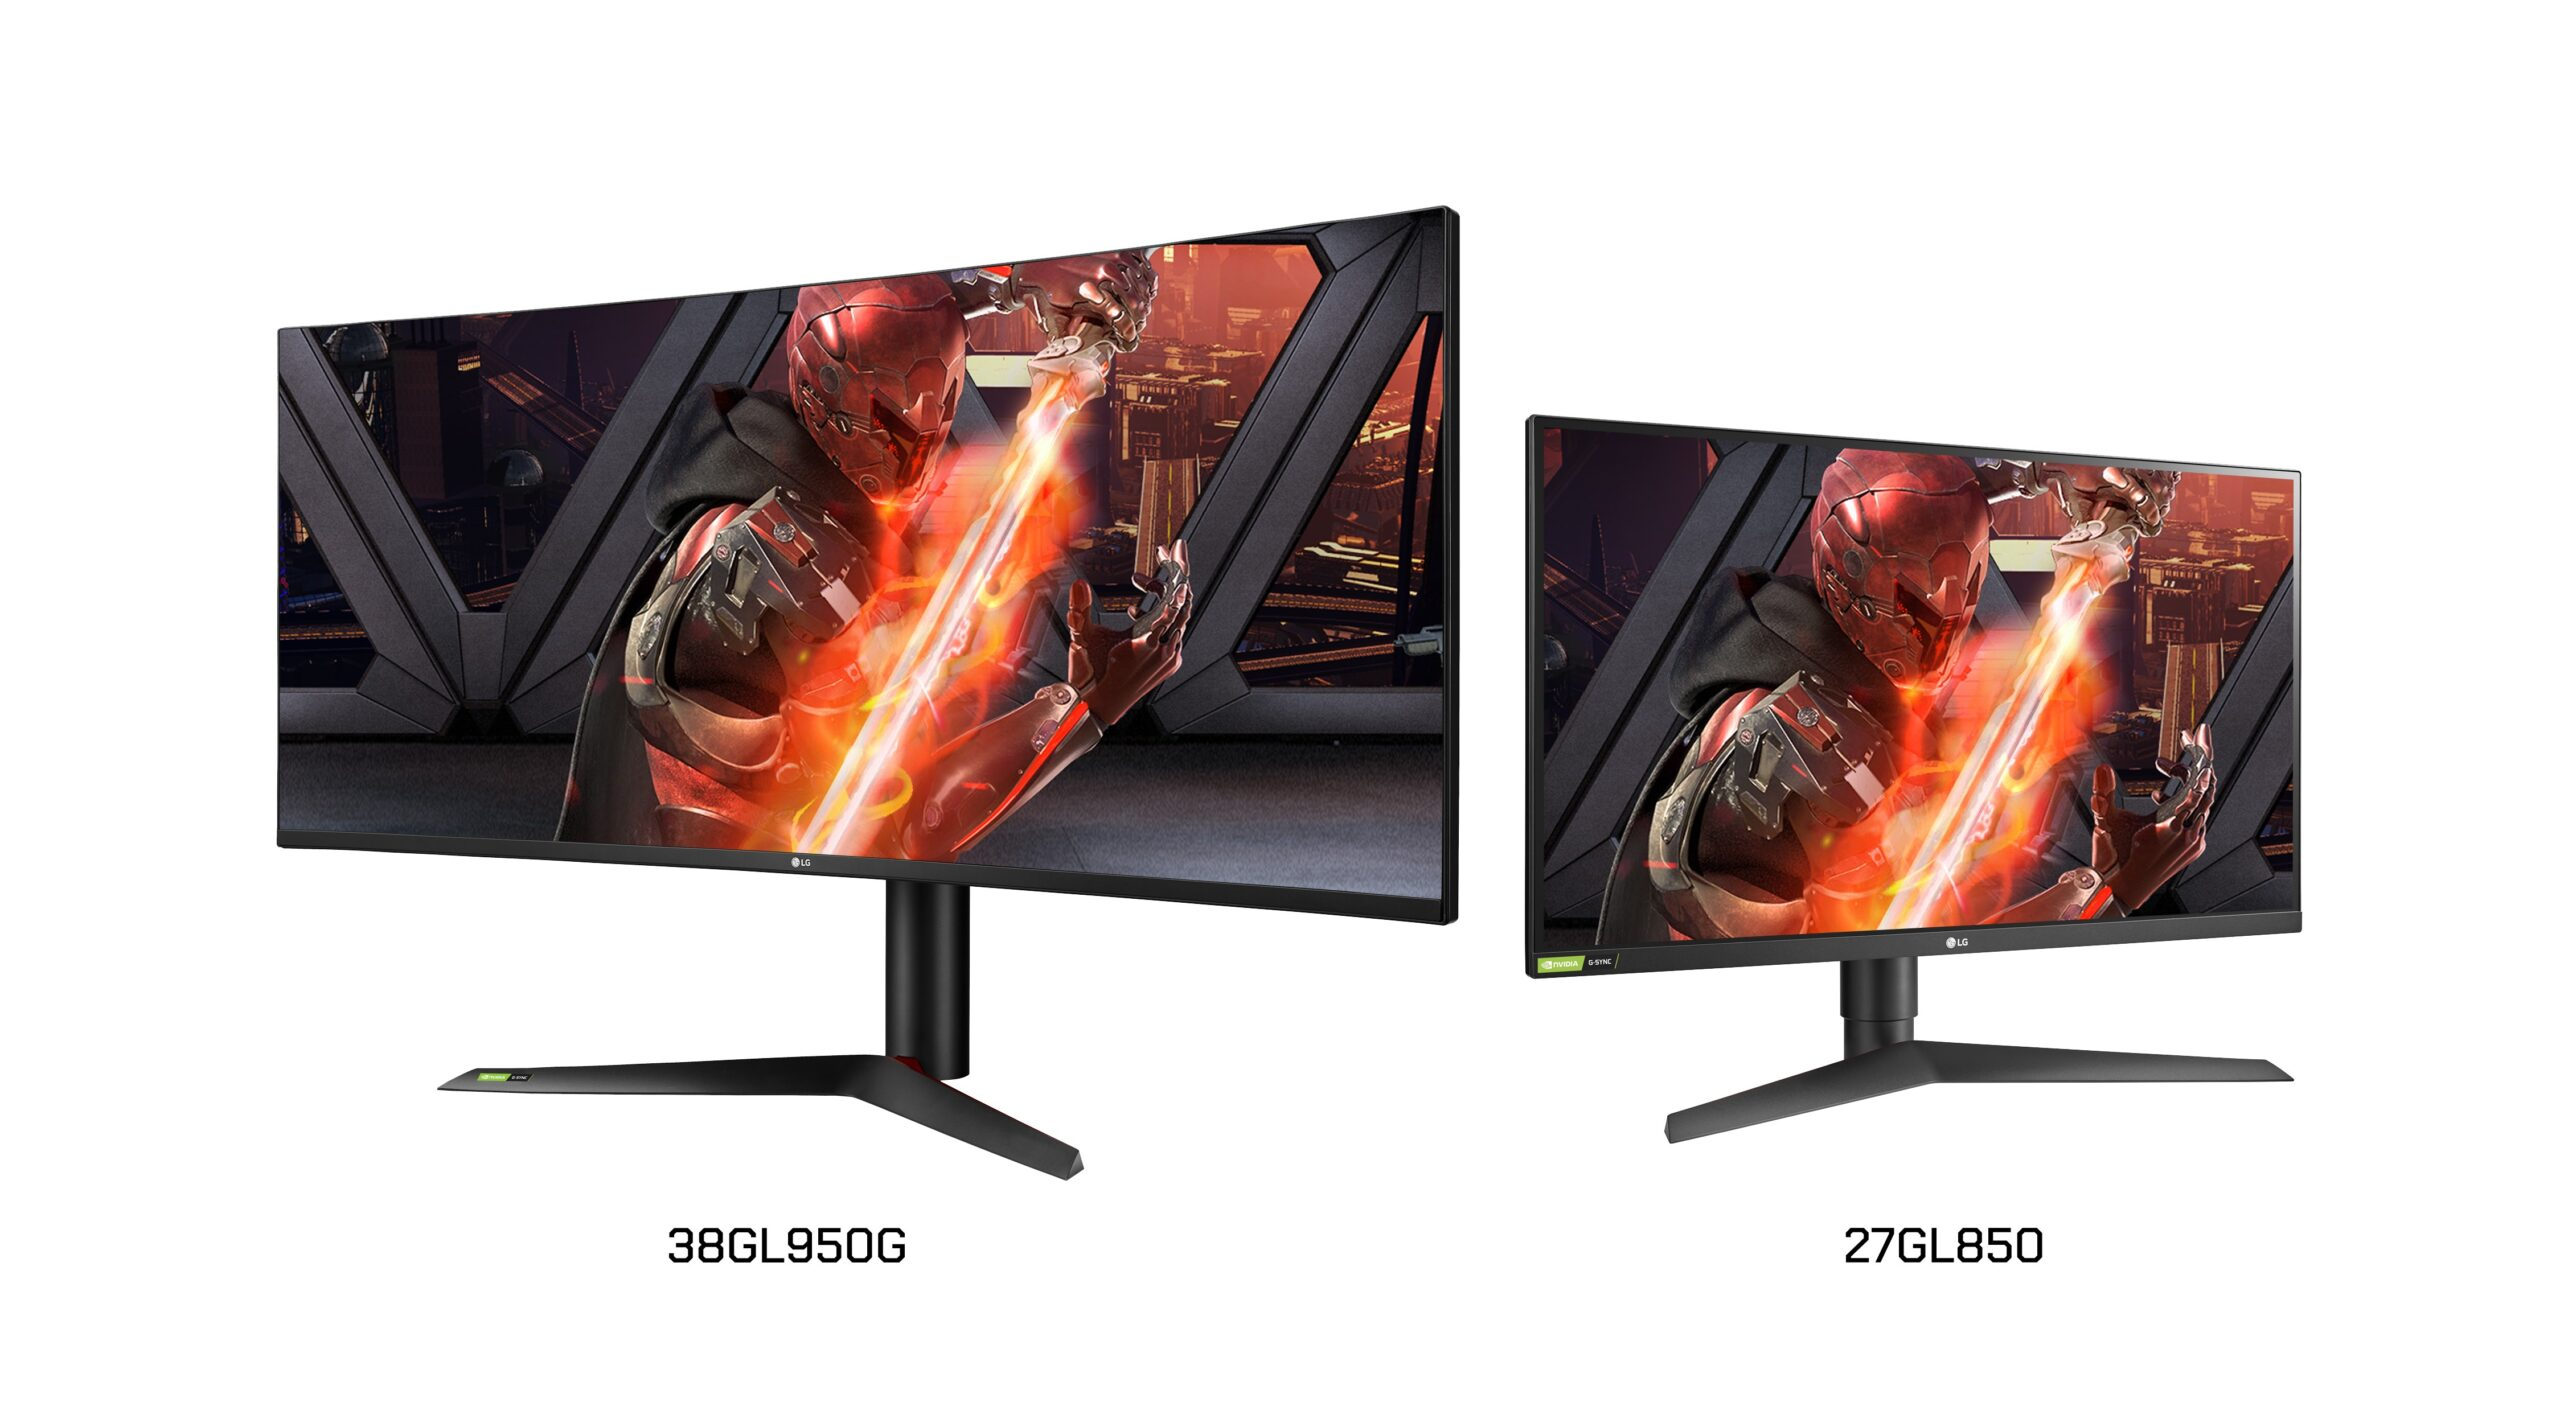 A right-side view of LG UltraGear Nano IPS G-SYNC Gaming Monitor model 38GL950G and a left-side view of model 27GL850